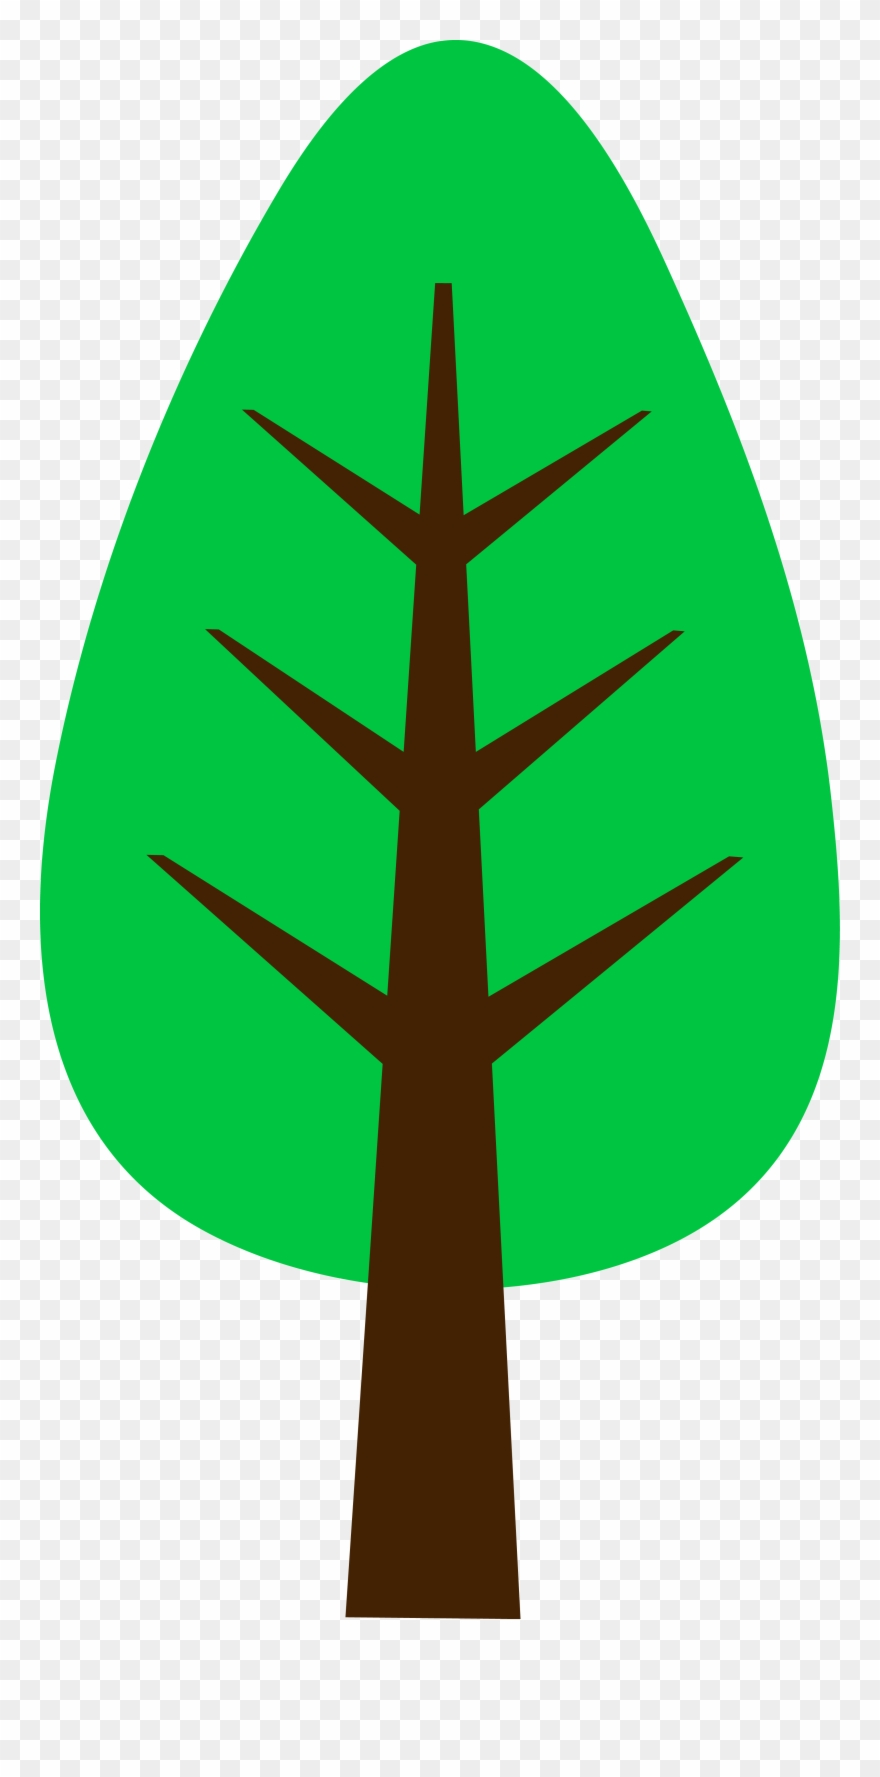 Simple tree clipart.